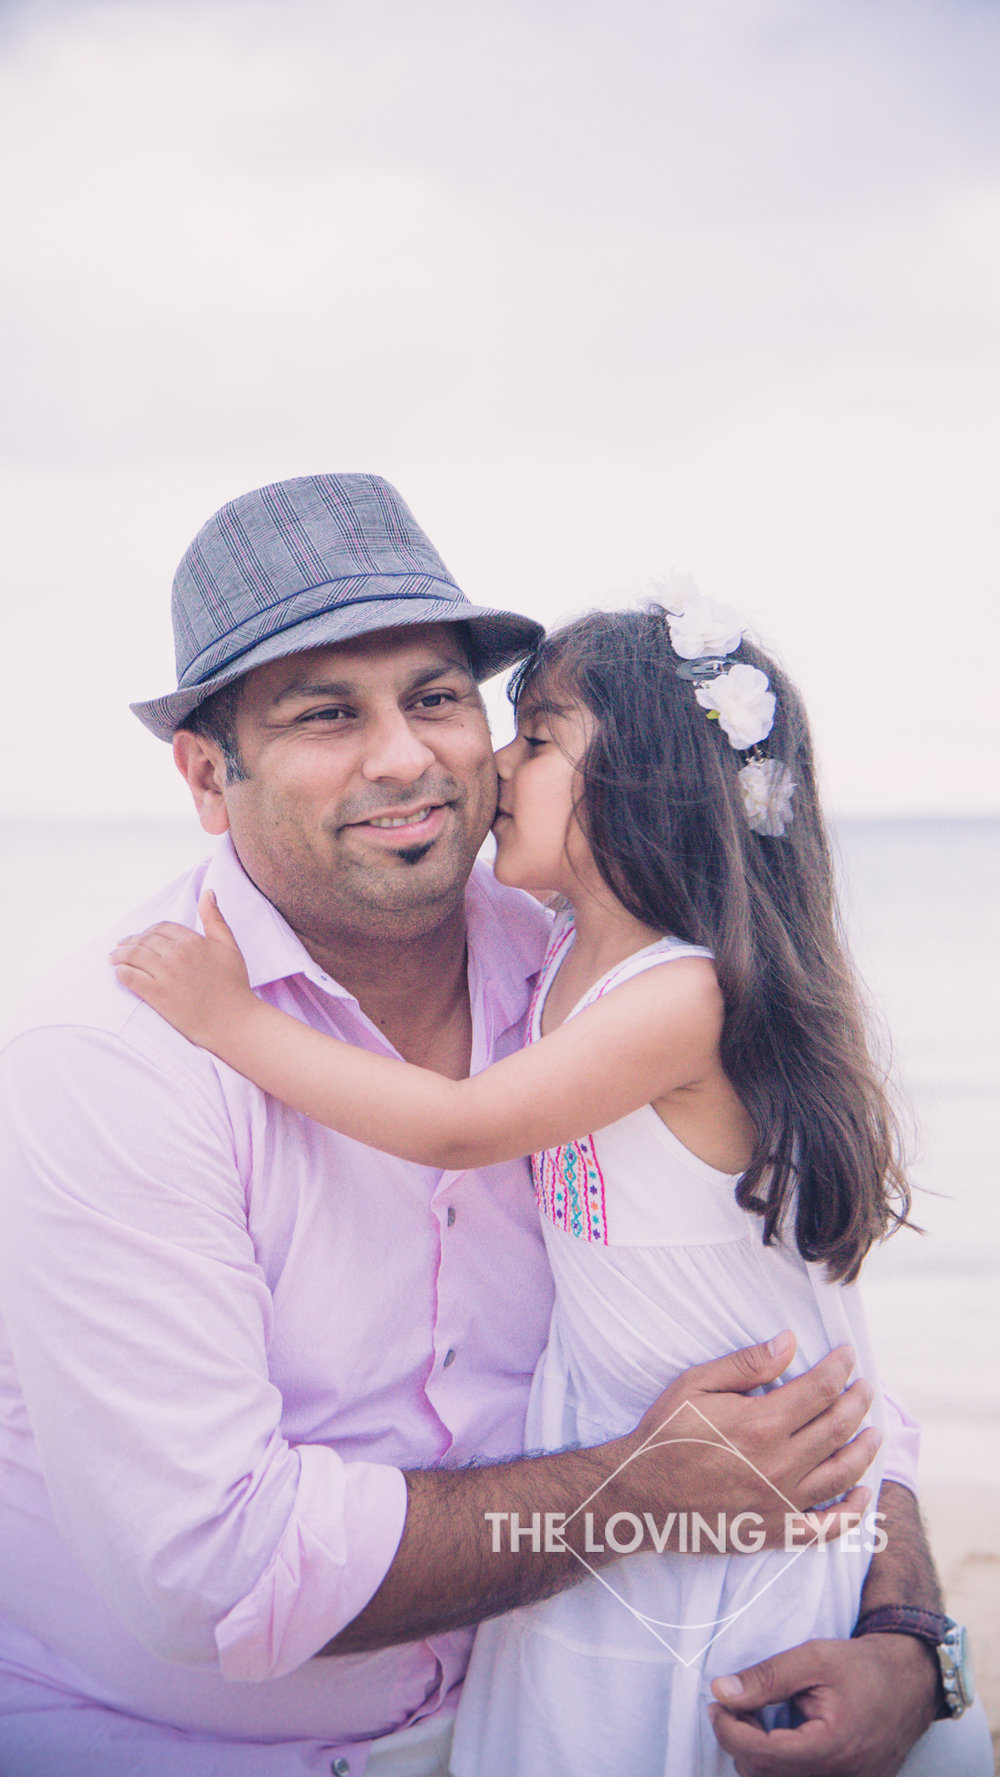 Daughter kissing father on the beach at Ala Moana Beach Park during Family vacation